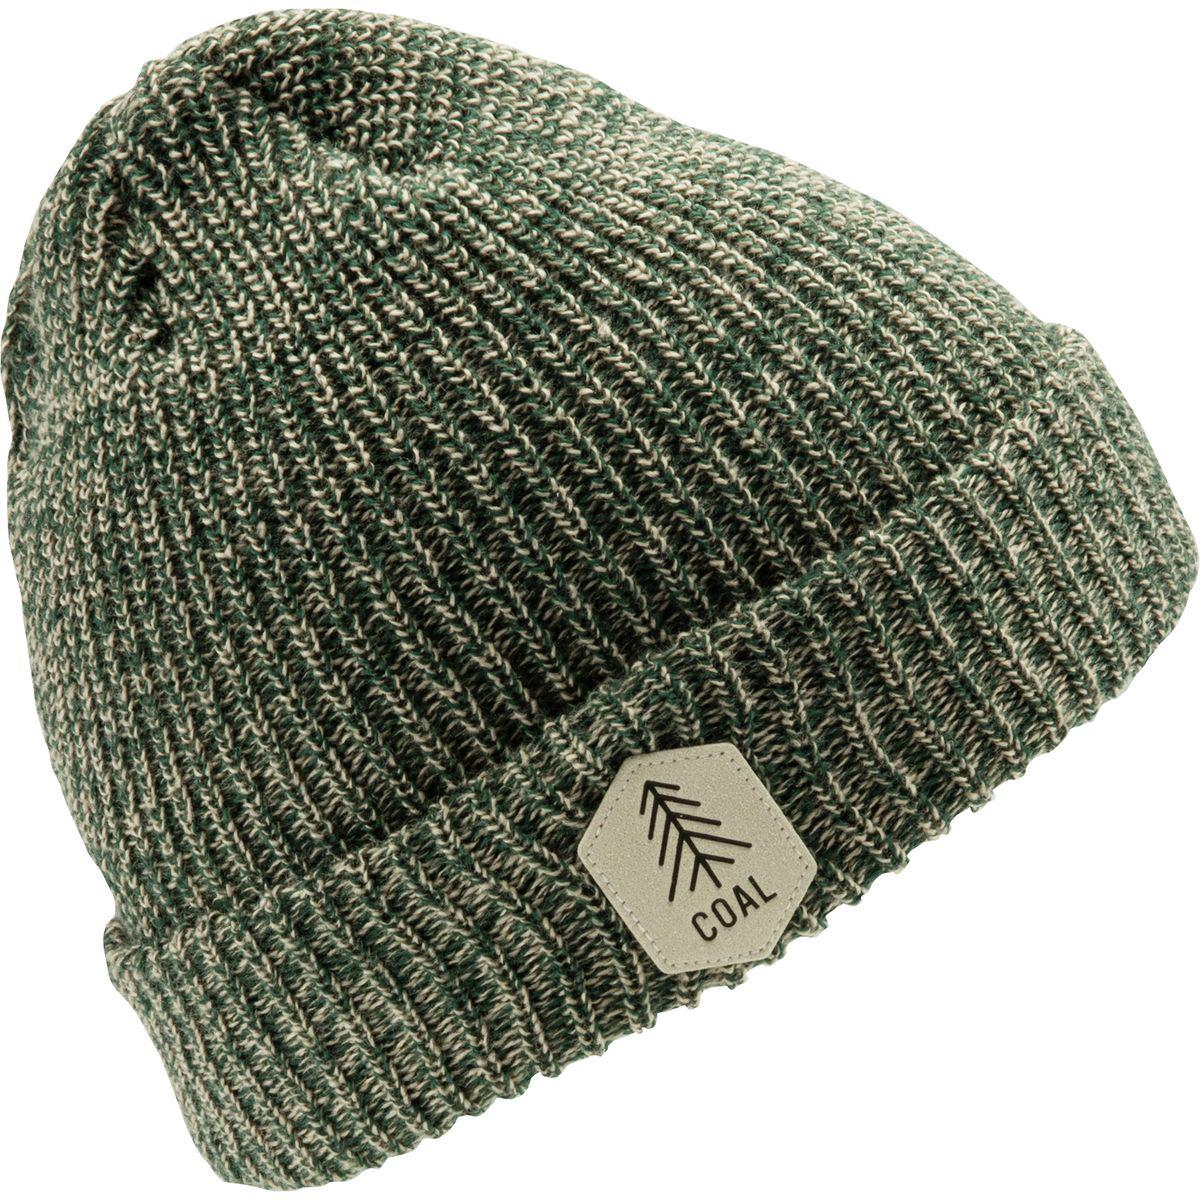 e1d36d6a0e1 Lyst - Coal Scout Beanie in Green for Men